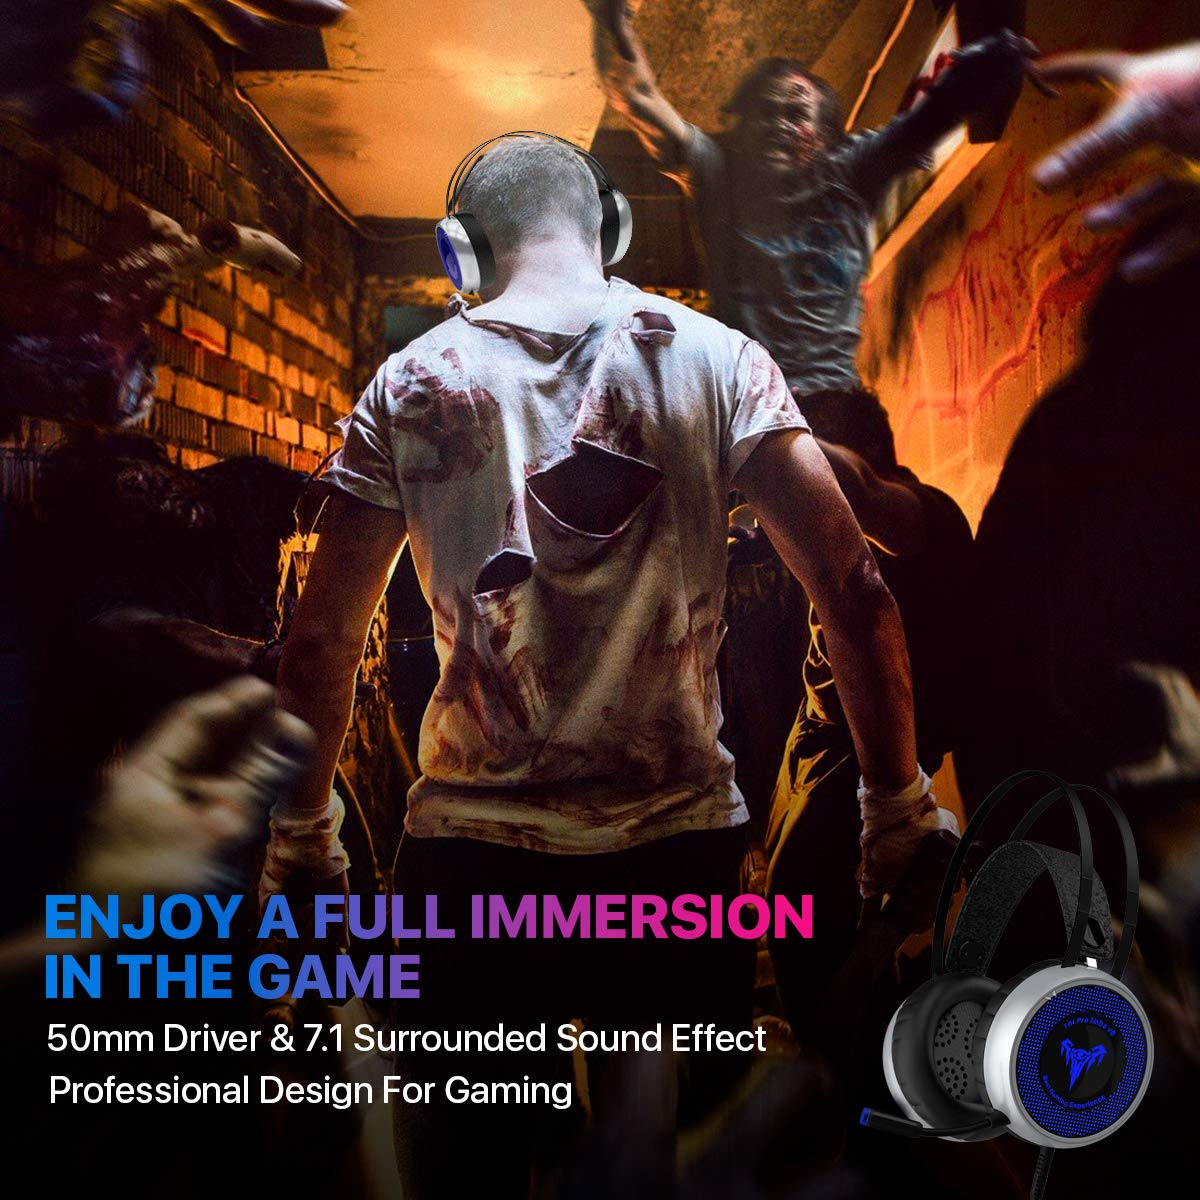 [Newest 2019] Gaming Headset for Xbox One, S, PS4, PC with LED Soft Breathing Earmuffs, Adjustable Microphone, Comfortable Mute & Volume Control, 3.5mm Adapter for Laptop, PS3, Nintendo by TBI Pro (Image #6)